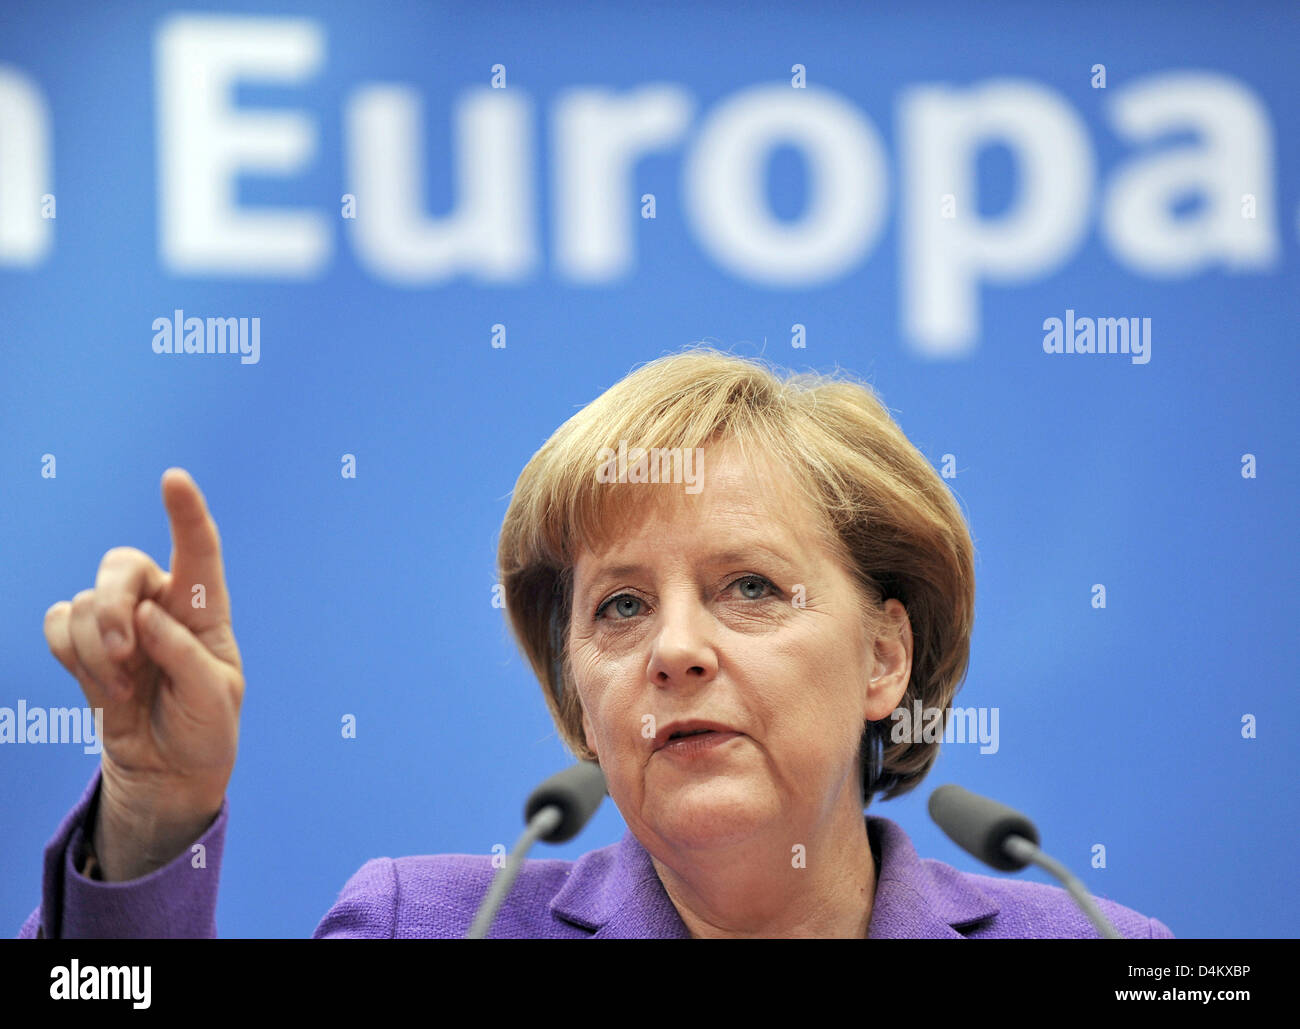 German Chancellor and Chairwoman of Christian Democratic Union (CDU), Angela Merkel, gives a press conference after a joint chair meeting of conservative sister parties CDU and CSU (Christian Social Union) in Berlin, Germany, 25 May 2009. Party leaders approved a joint declaration on the upcoming elections for the European Parliament, taking place on June 7th 2009. Photo: HANNIBAL Stock Photo